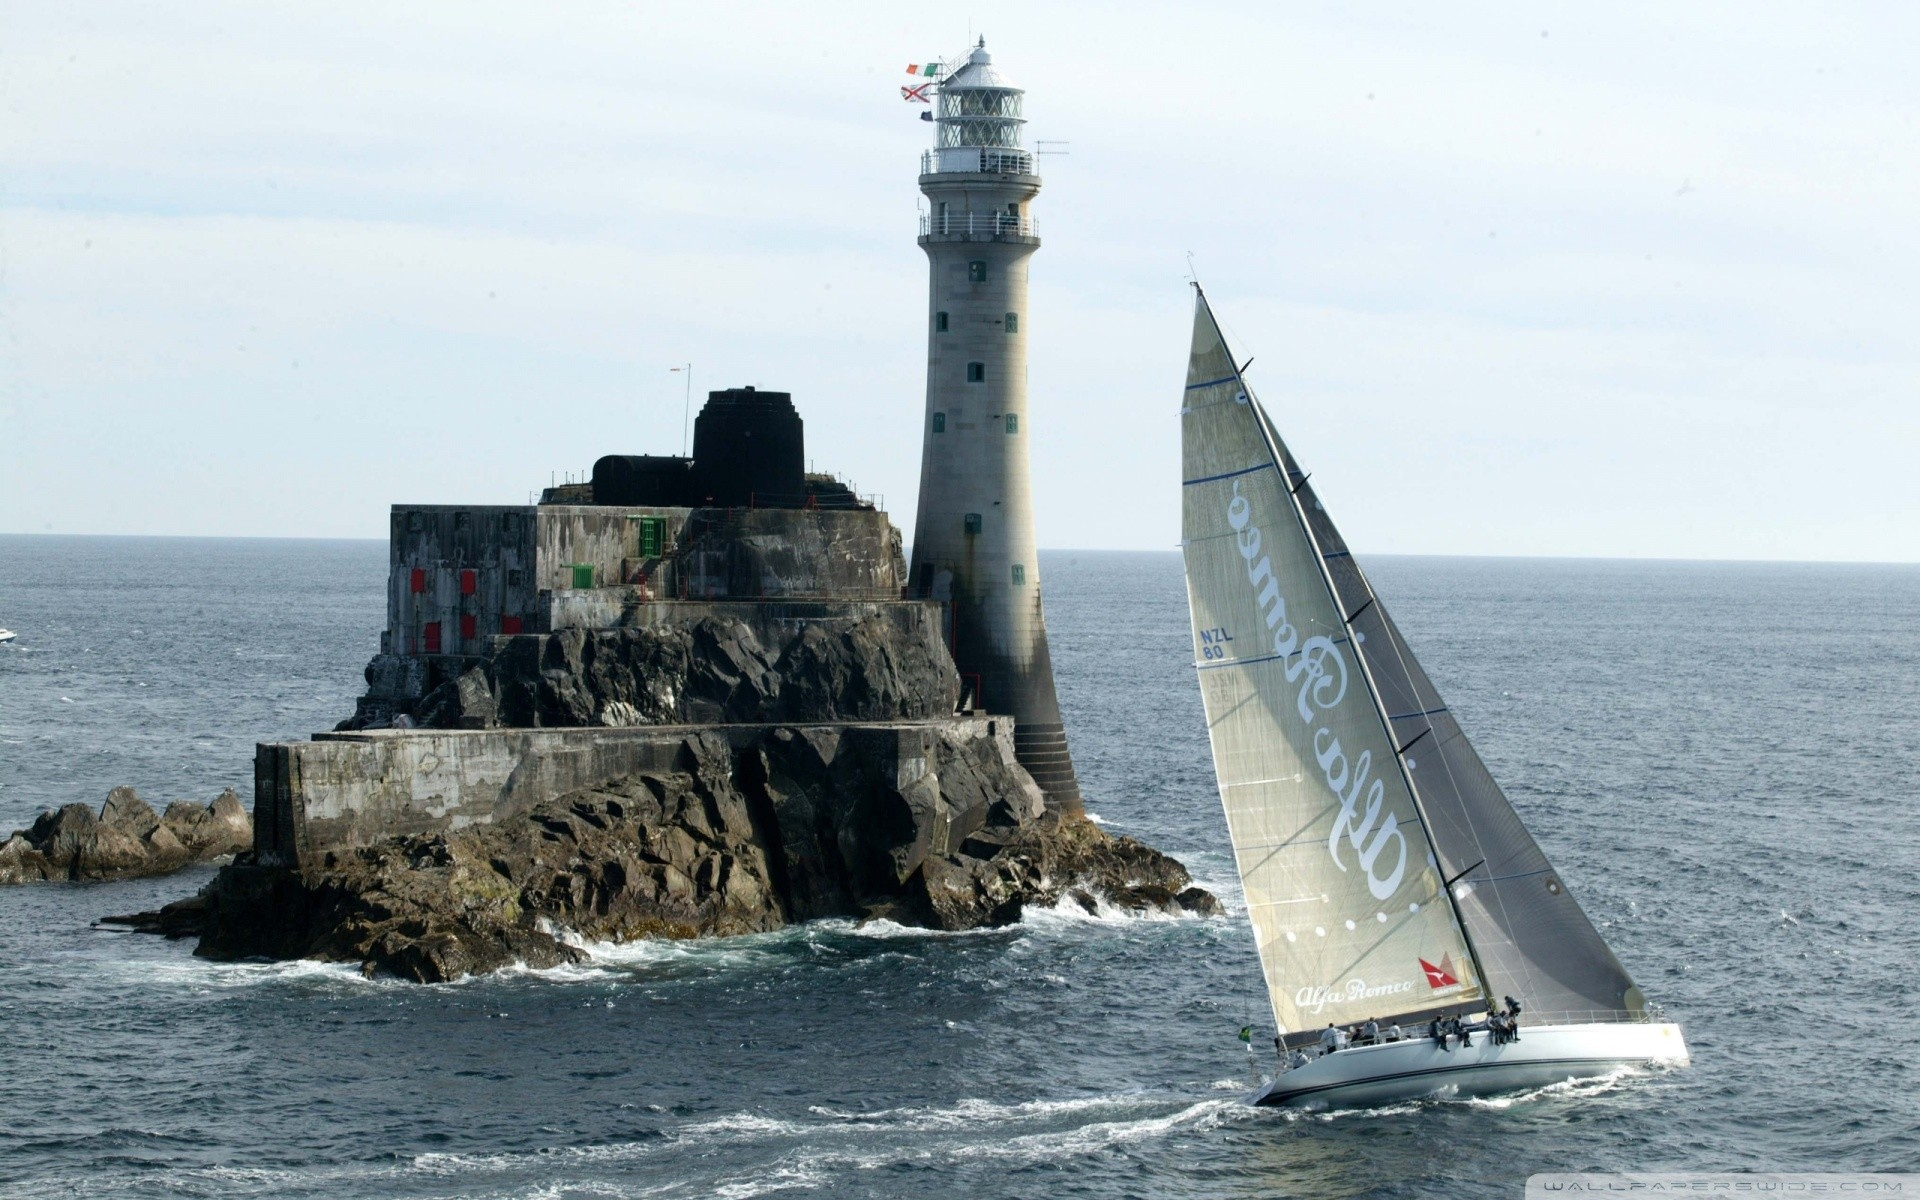 1920x1200 bing images wallpaper | Bing Images - Yacht Race - Foredeck of ocean racing  yacht going ... | Bing | Pinterest